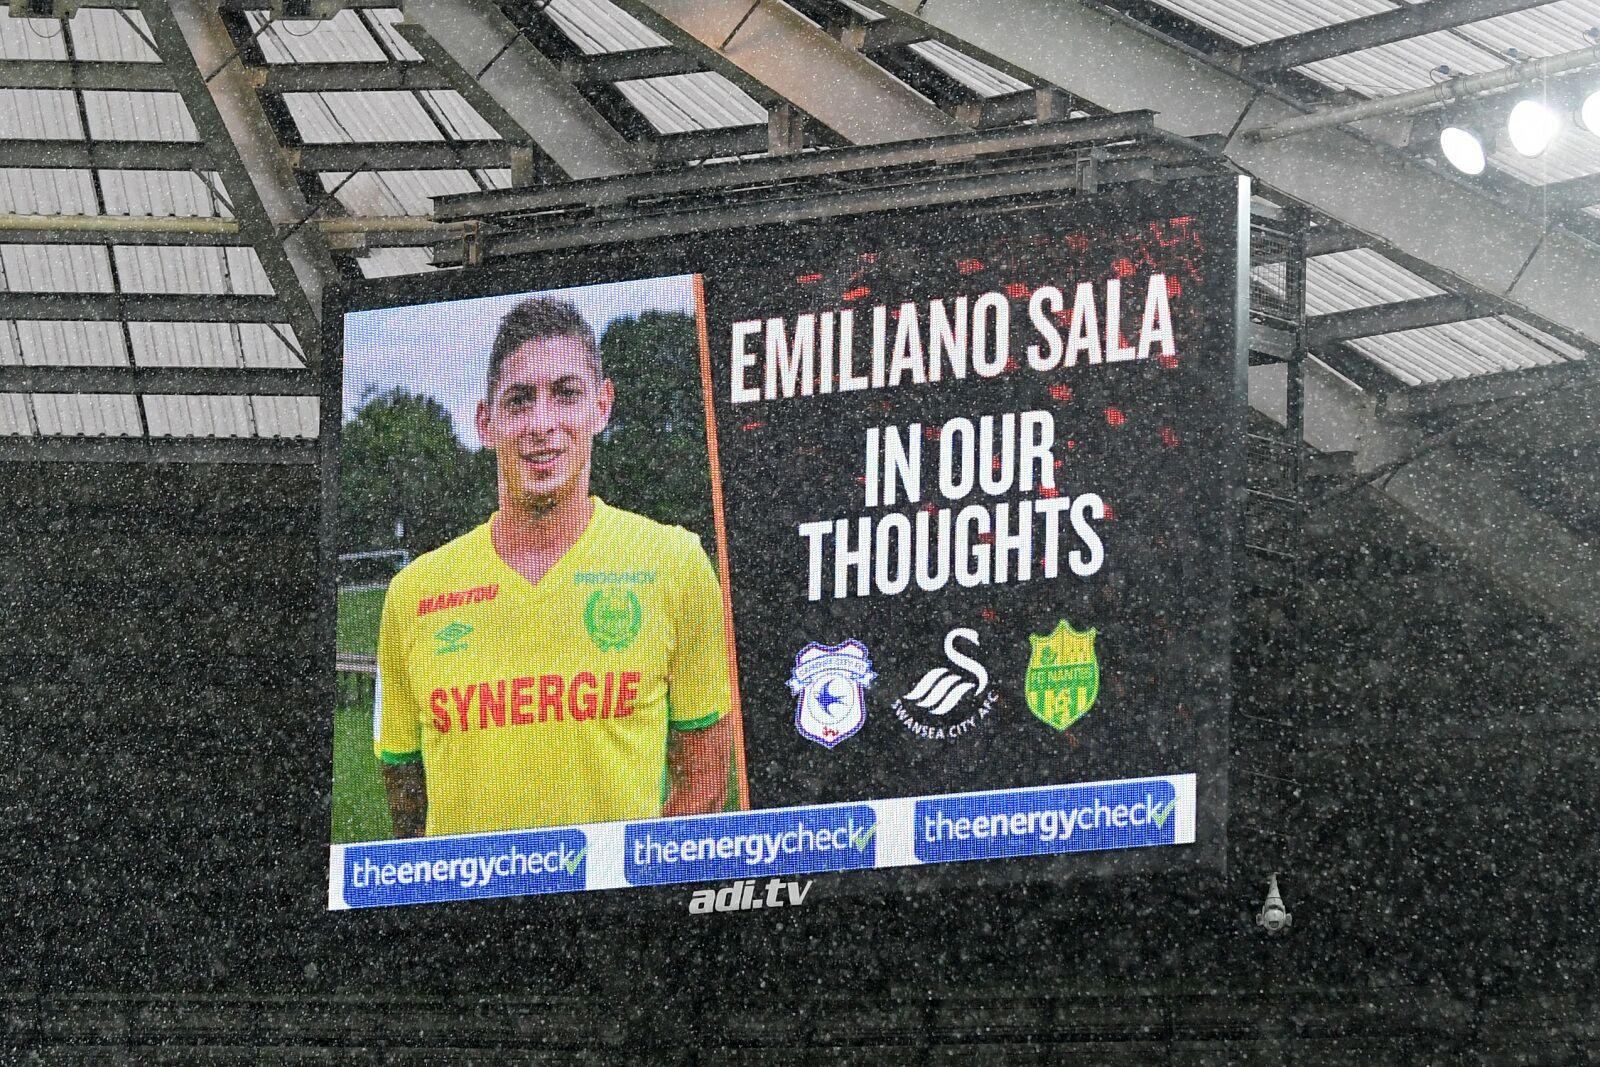 Cardiff City to pay £5.3 million to Nantes for Emiliano Sala transfer